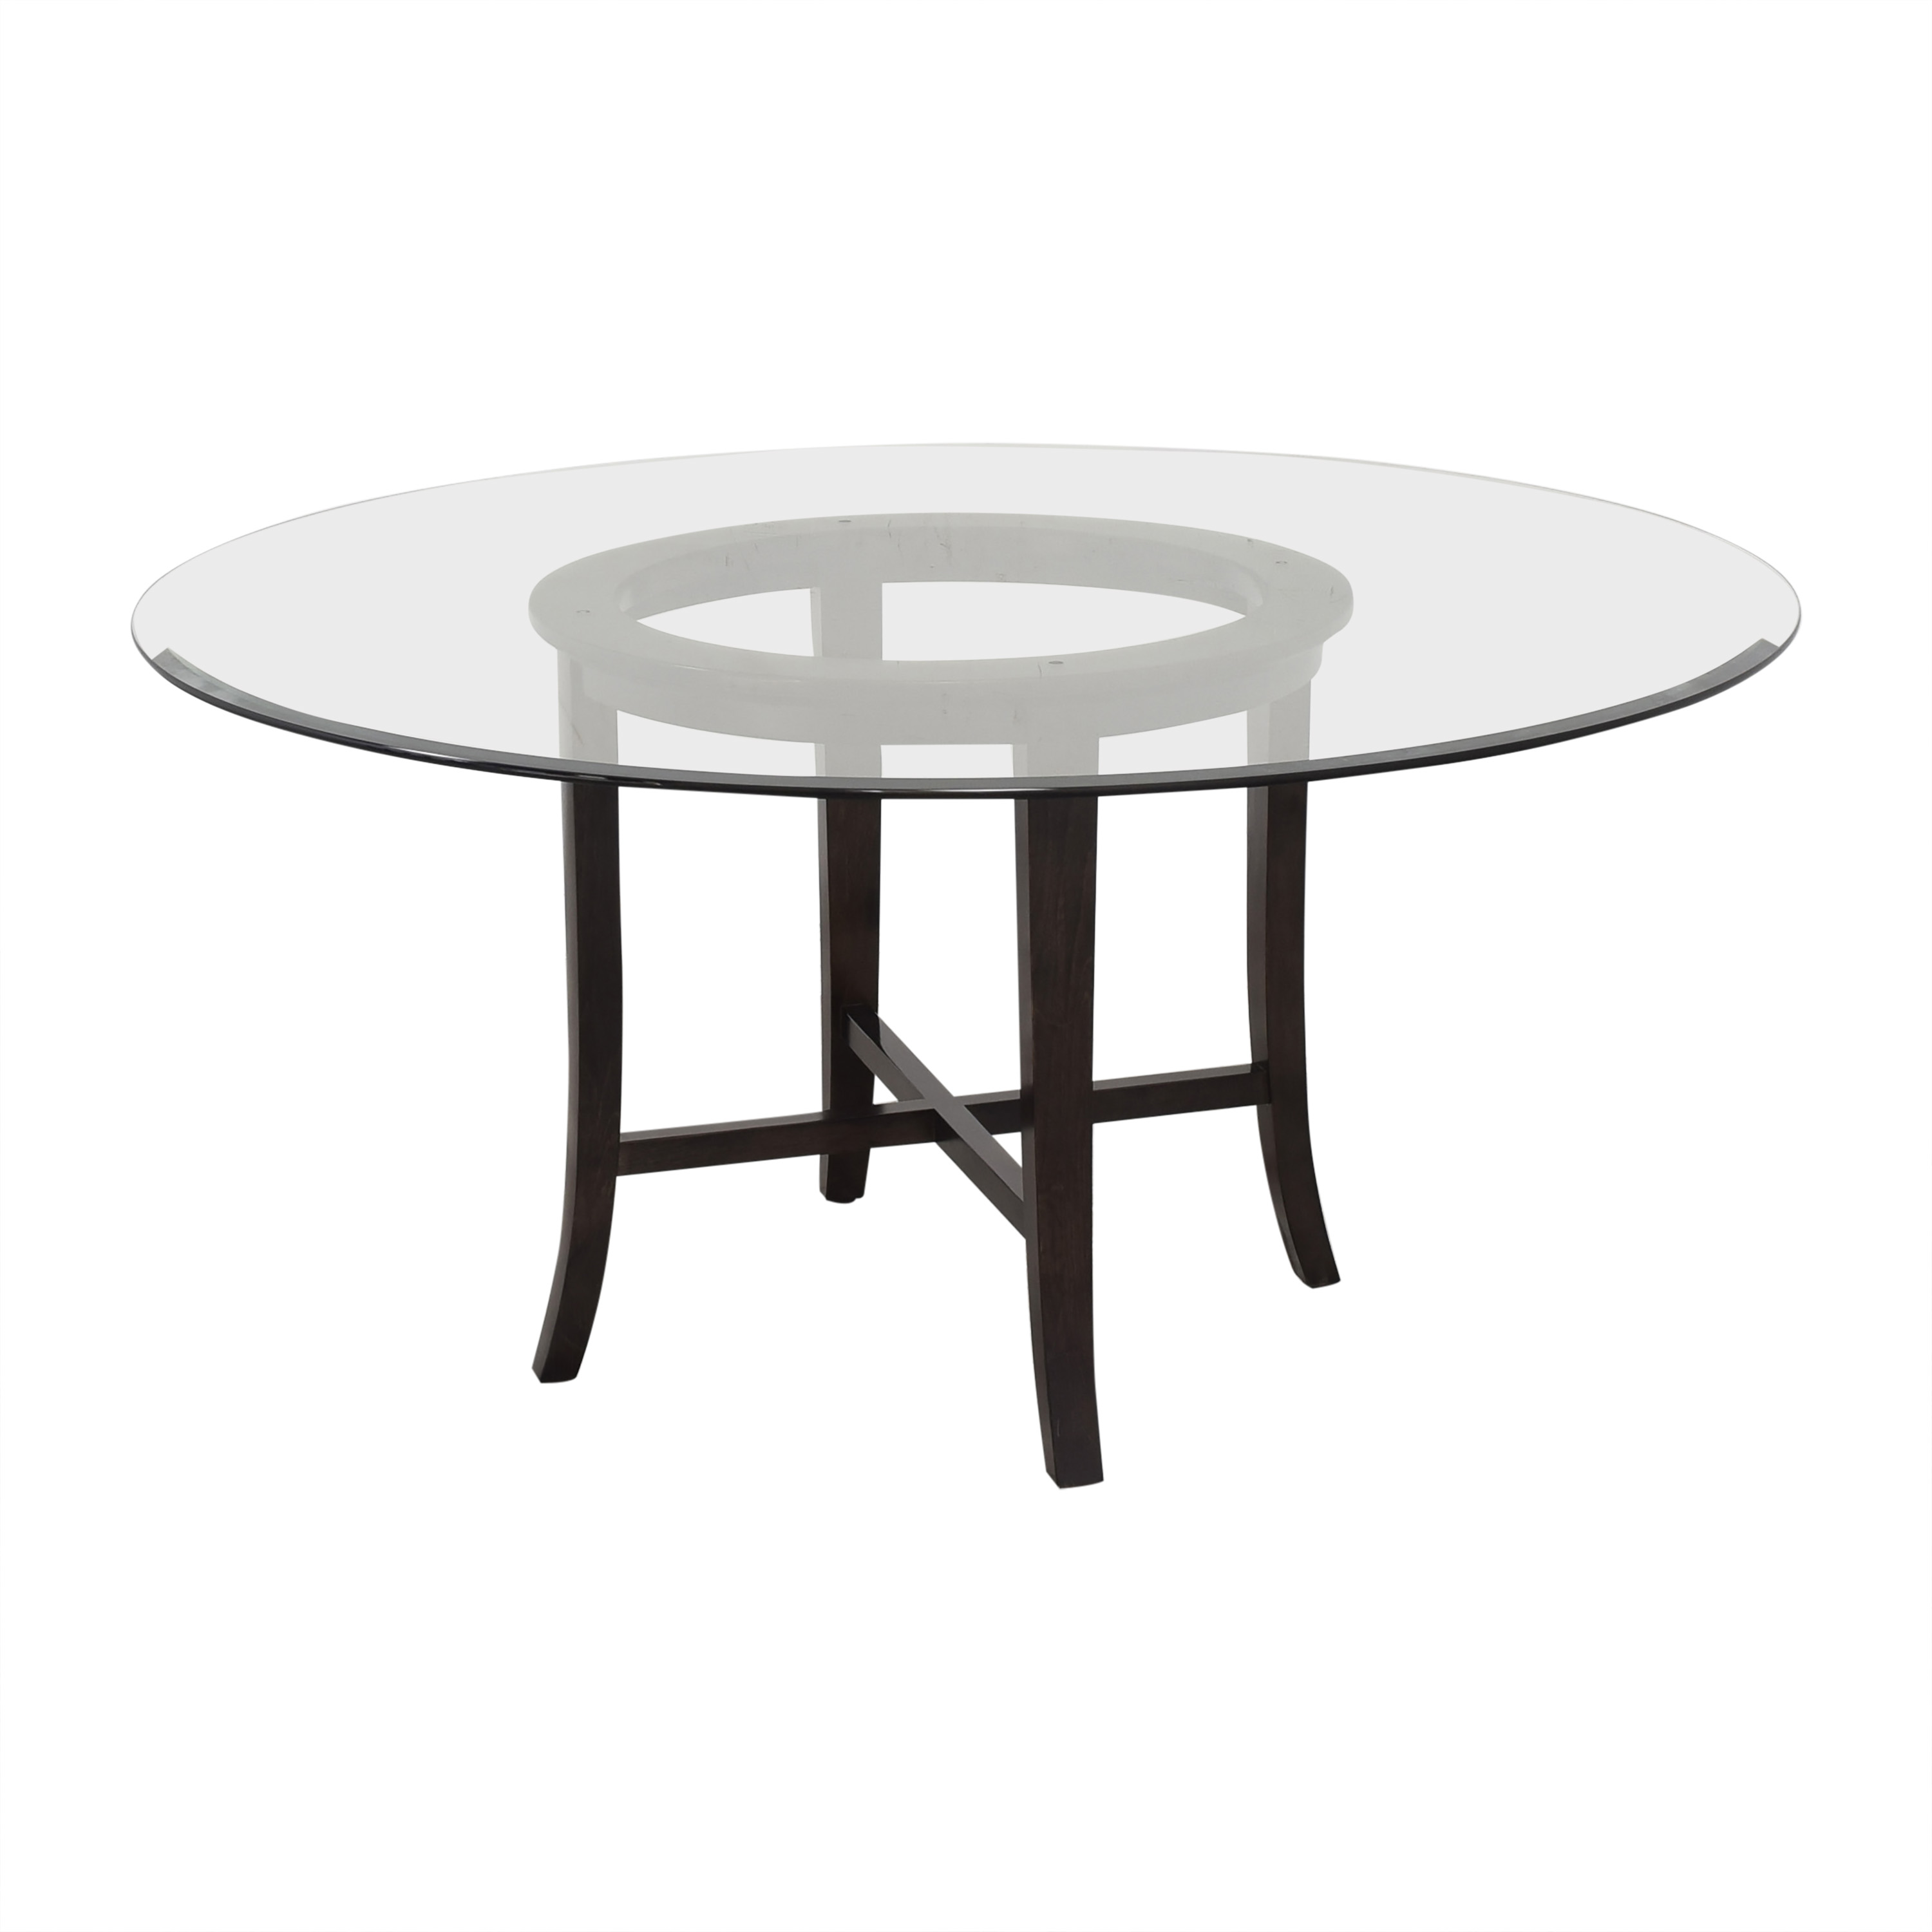 shop Crate & Barrel Halo Round Dining Table with Glass Top Crate & Barrel Tables